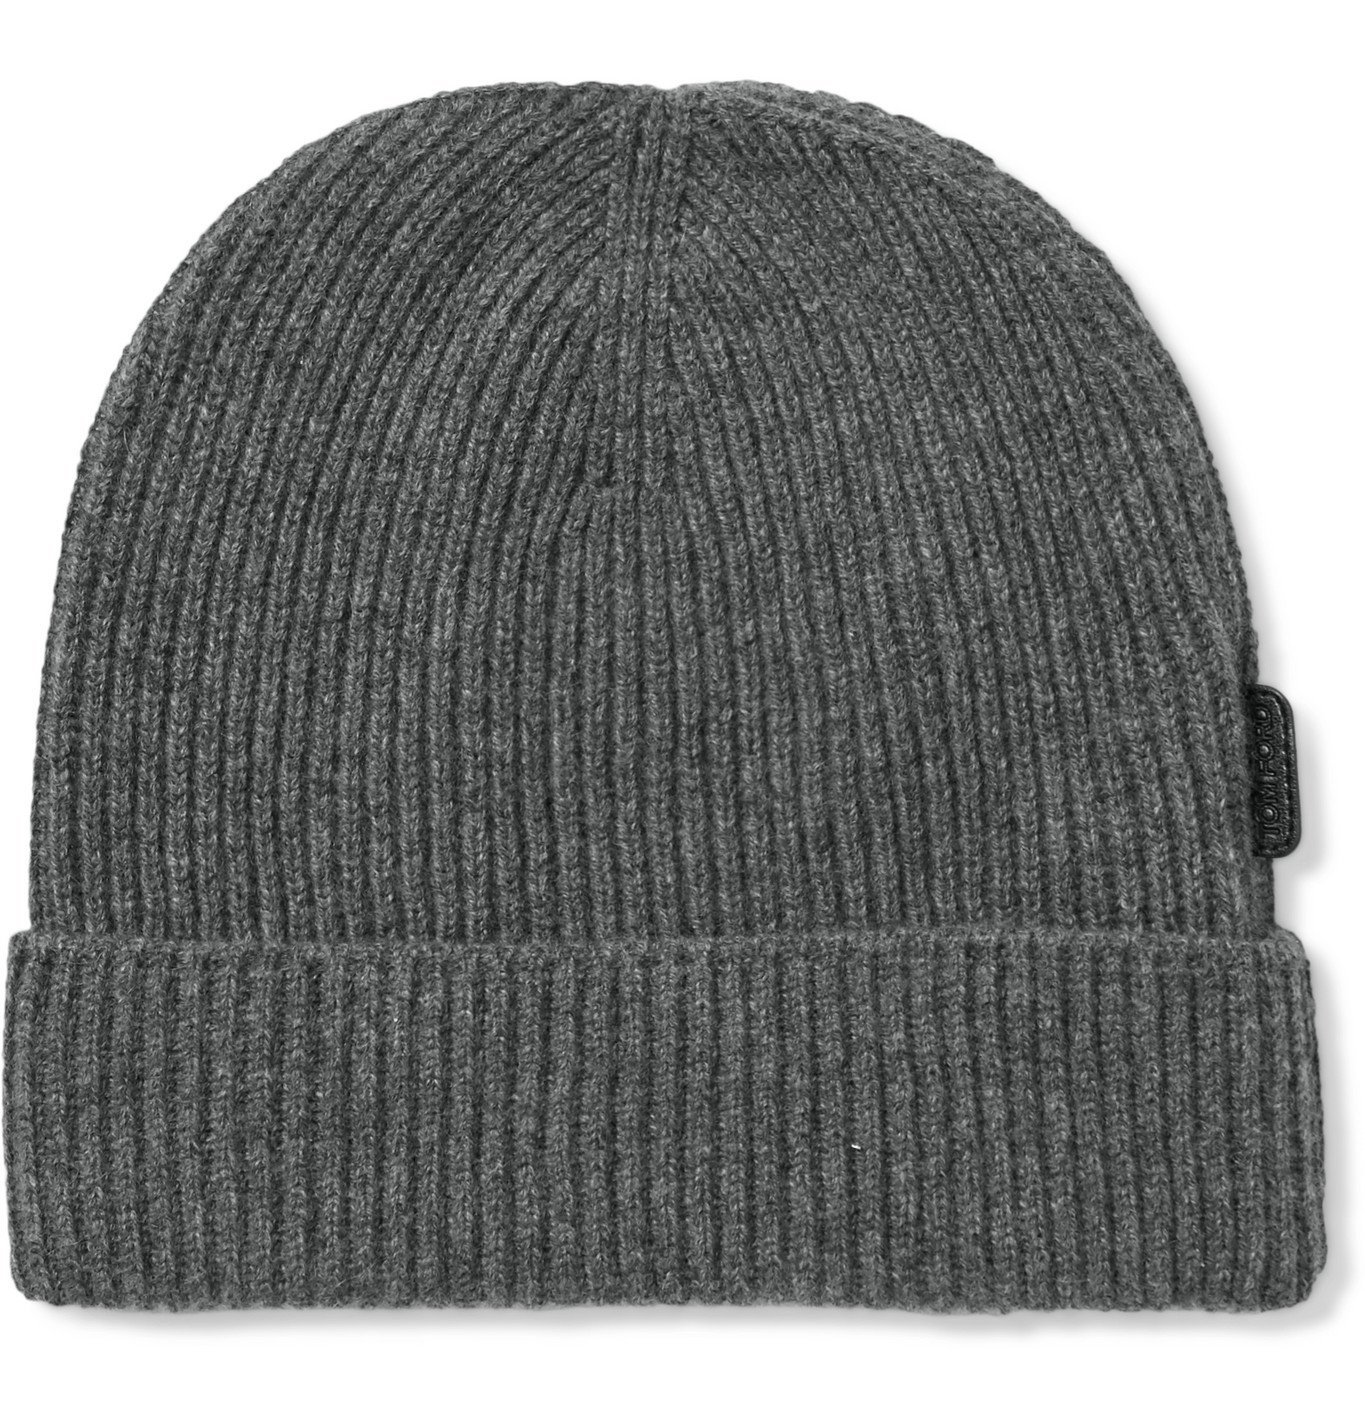 TOM FORD - Ribbed Cashmere Beanie - Gray